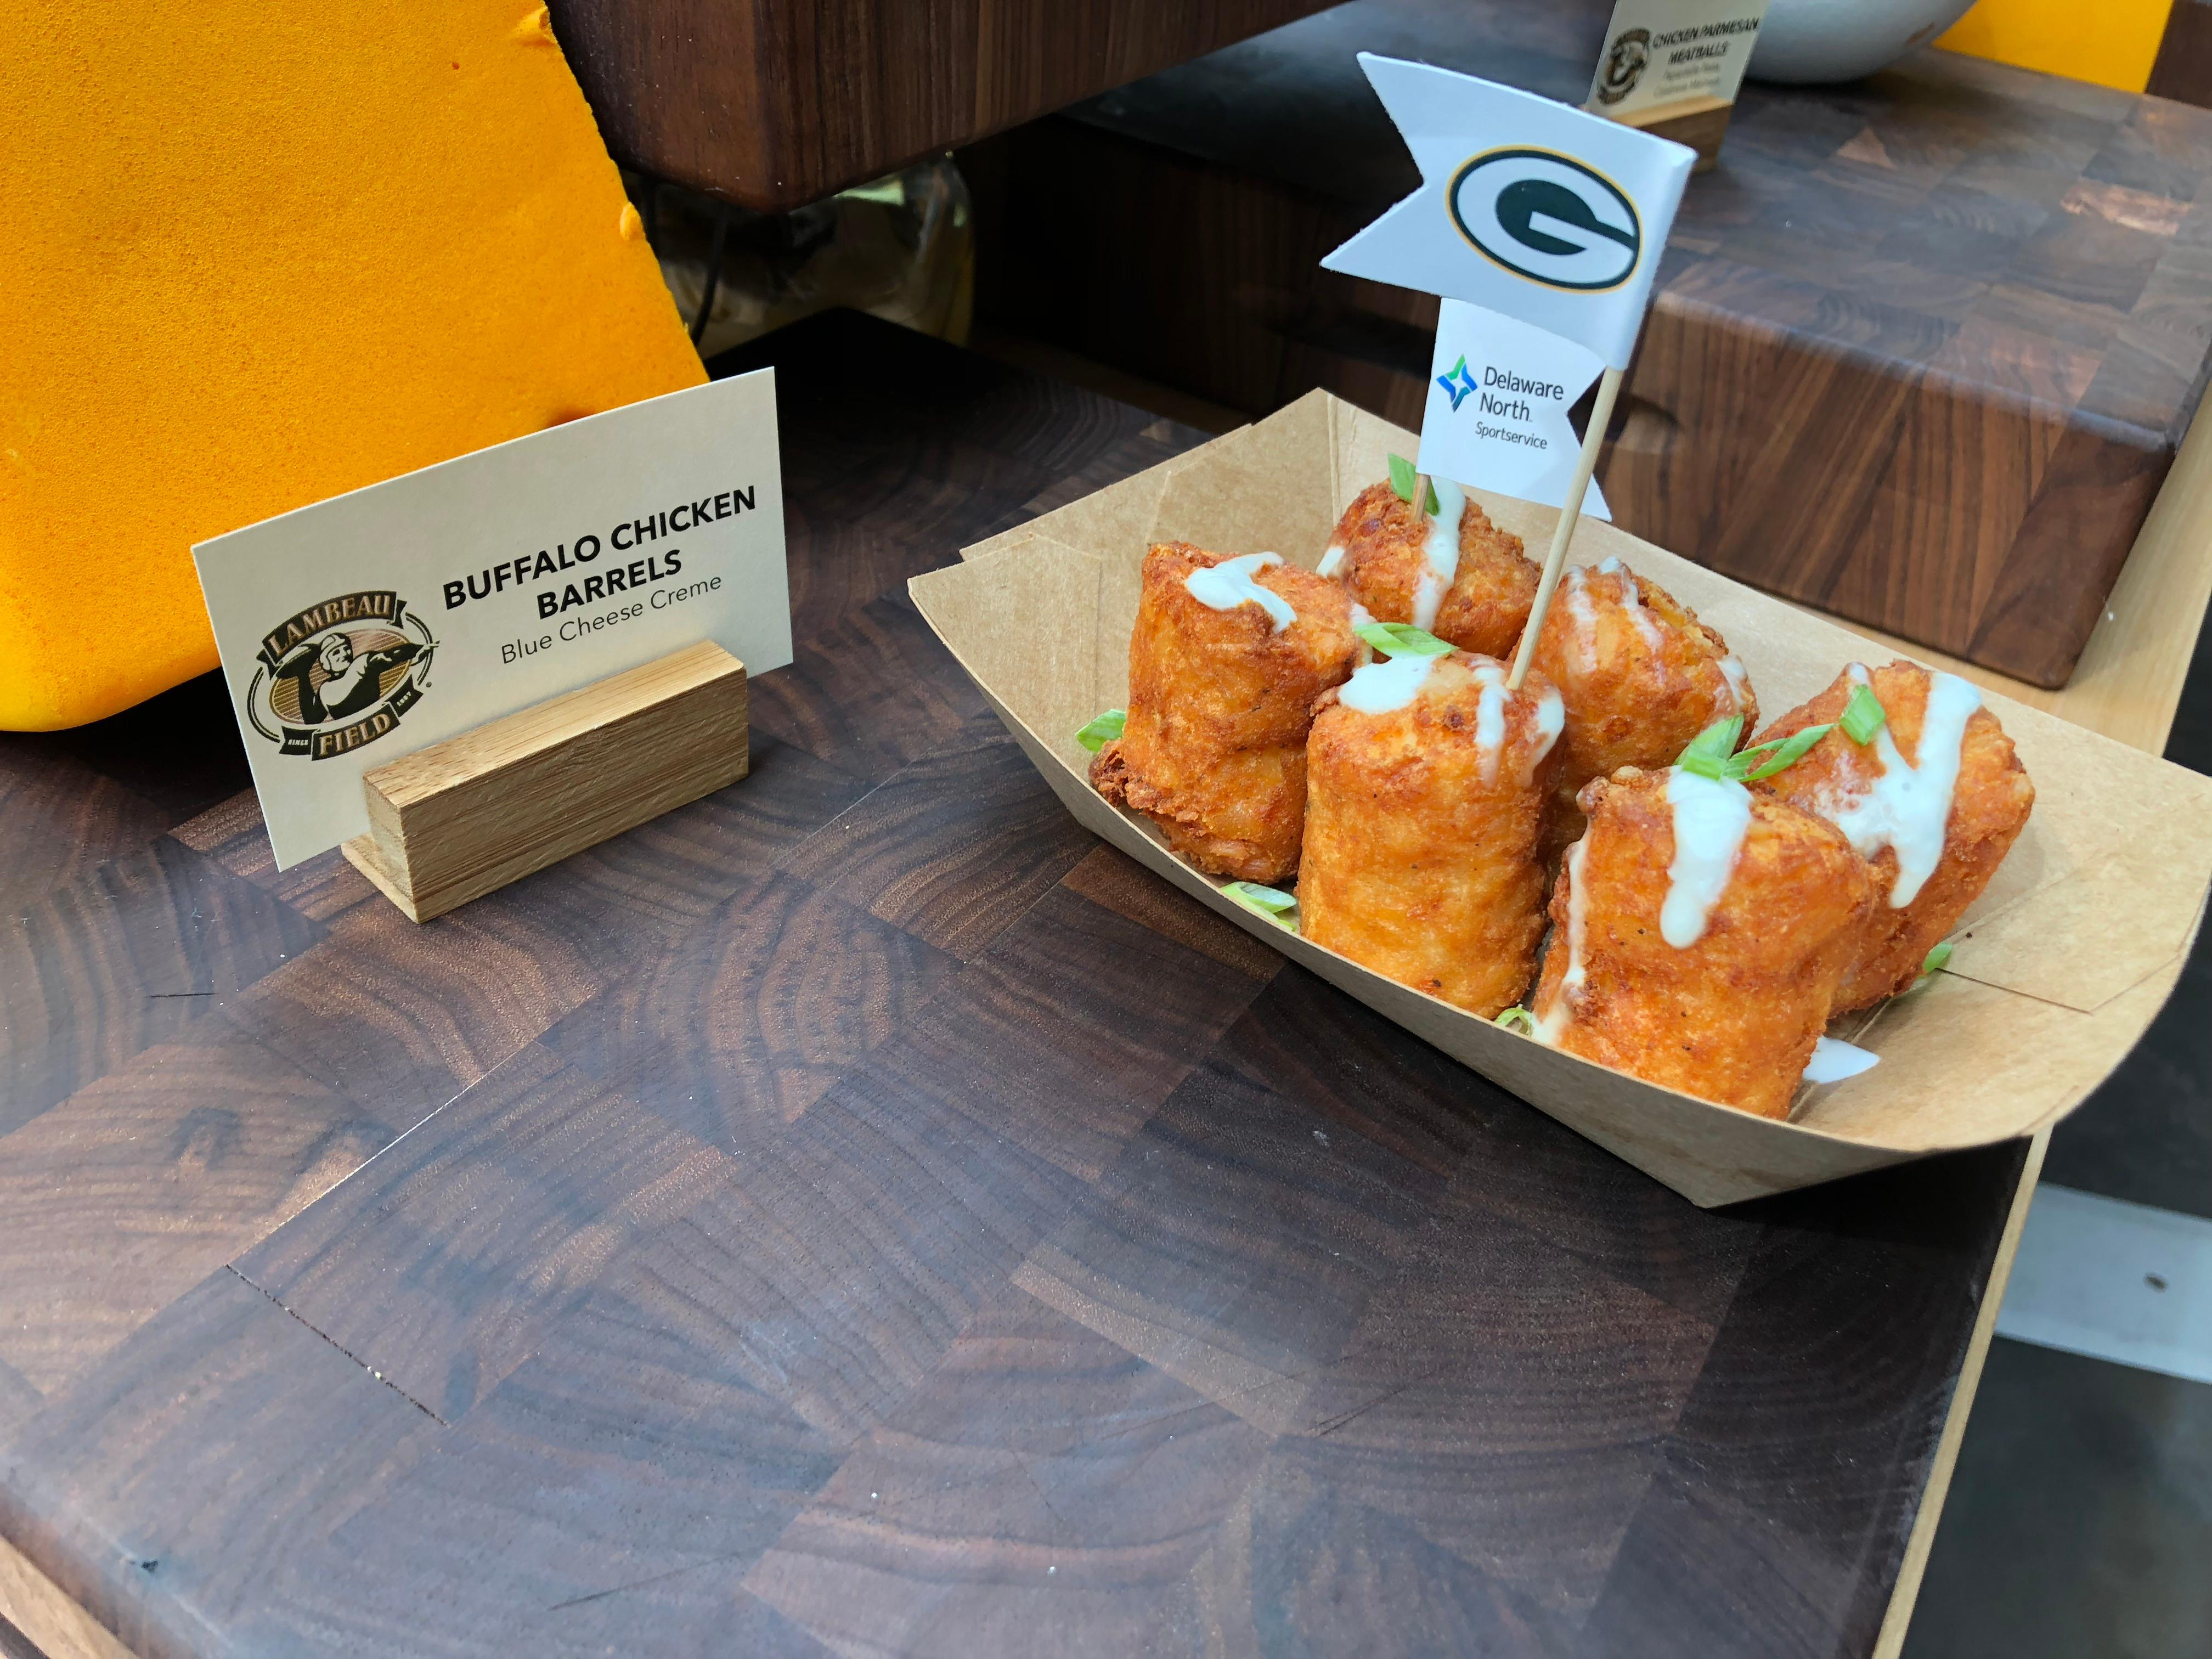 Buffalo Chicken Barrels are part of the Packers game day menu, September 10, 2019 (WLUK/Eric Peterson)